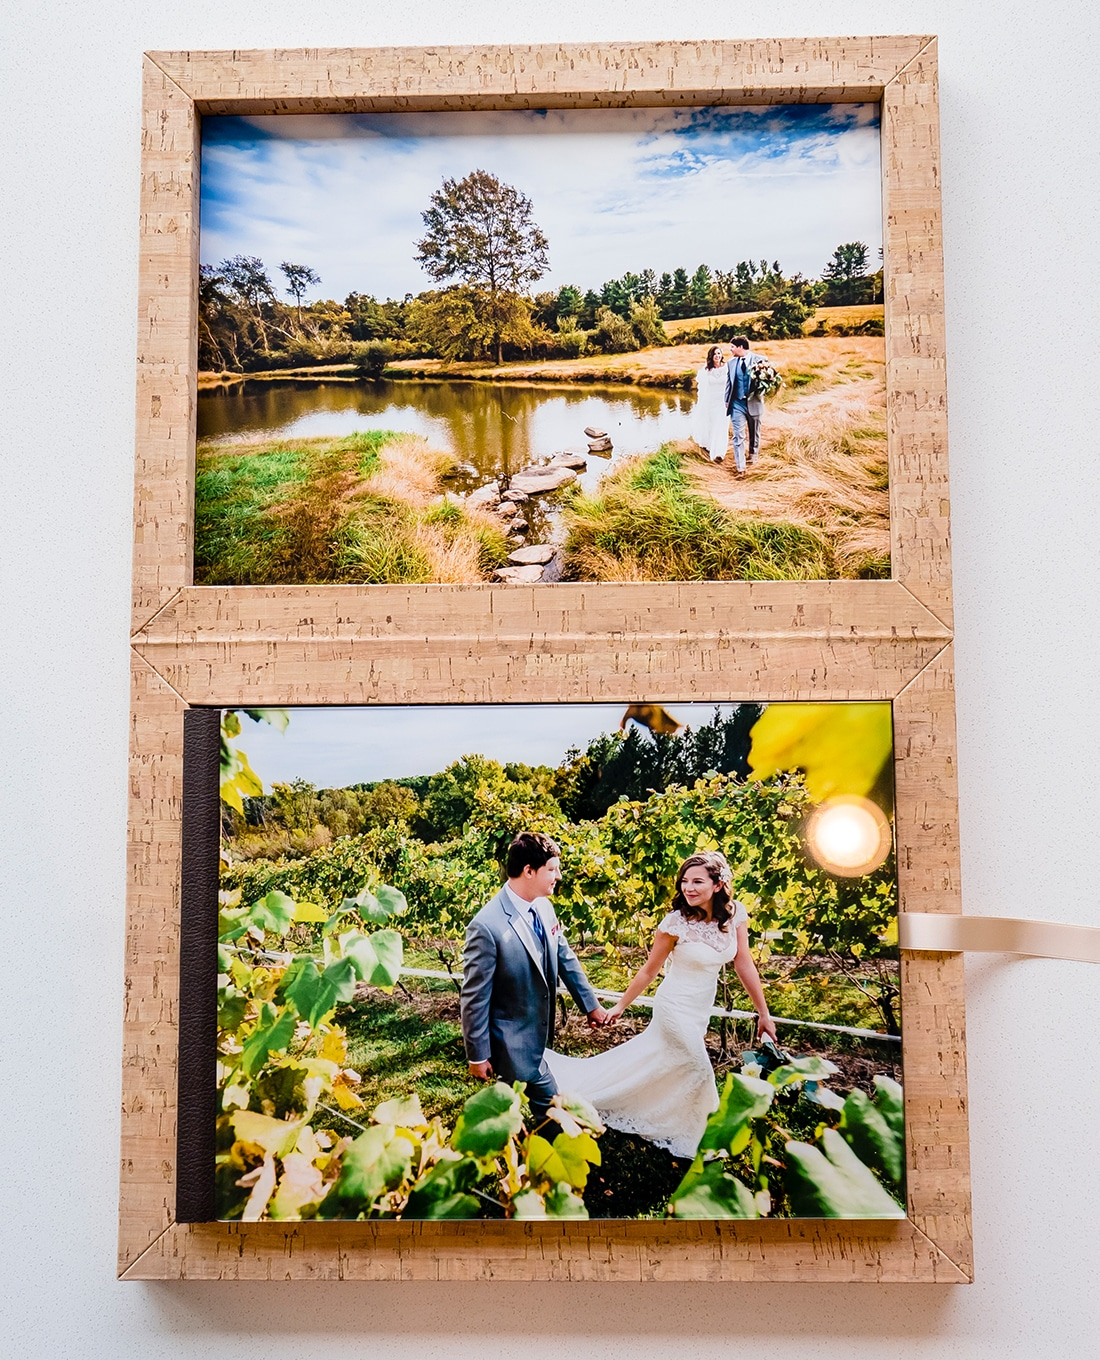 A staged photo of a wedding album with a reflective cover housed in a cork box sitting on a white table.